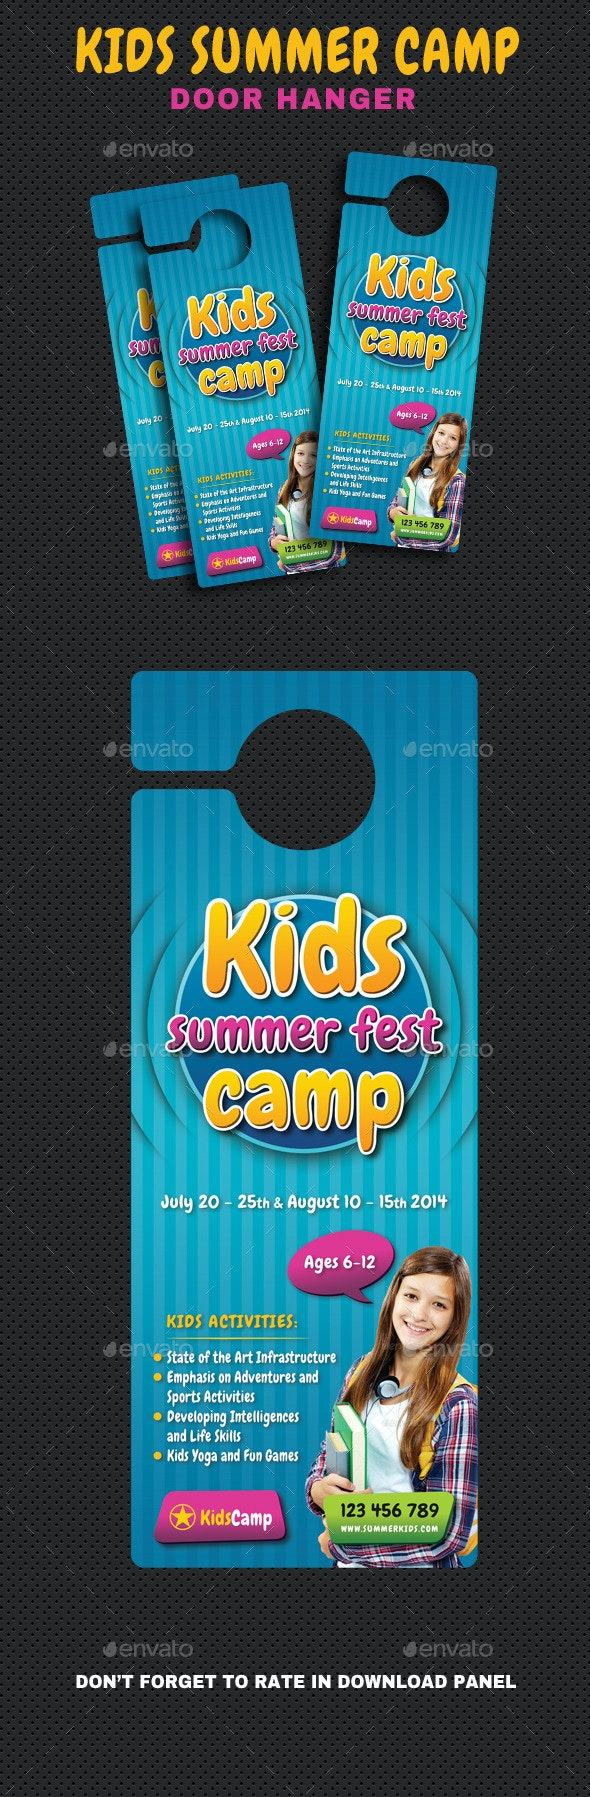 Kids Summer Camp Door Hanger V01 - Miscellaneous Print Templates